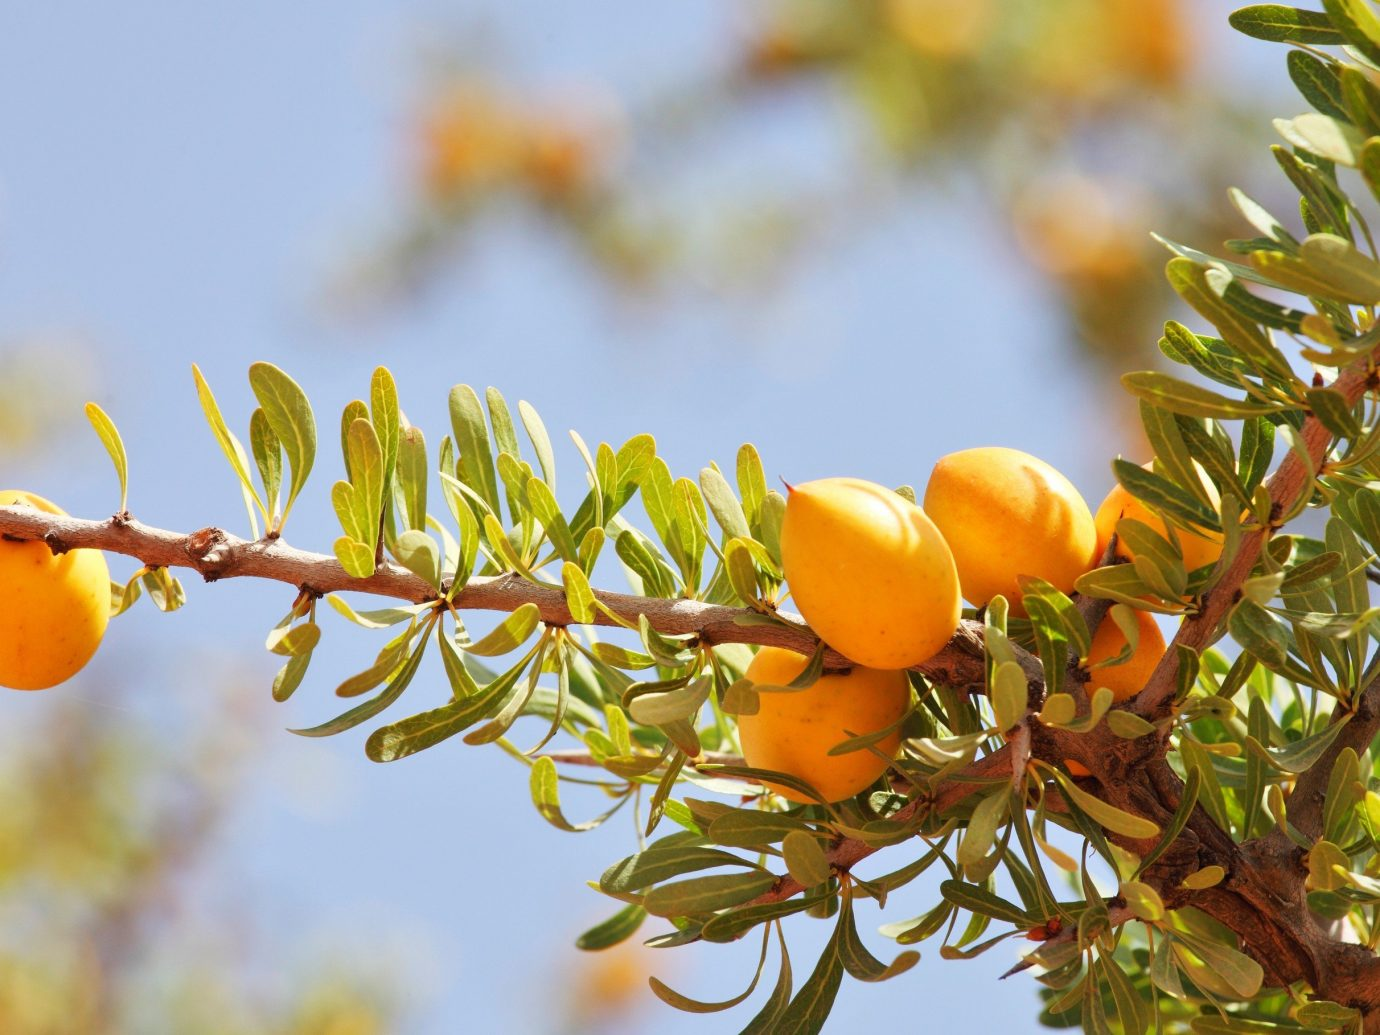 Style + Design tree Nature flora plant branch fruit outdoor flower yellow produce botany food leaf orange season land plant woody plant citrus autumn macro photography rose hip flowering plant blossom shrub sunlight evergreen